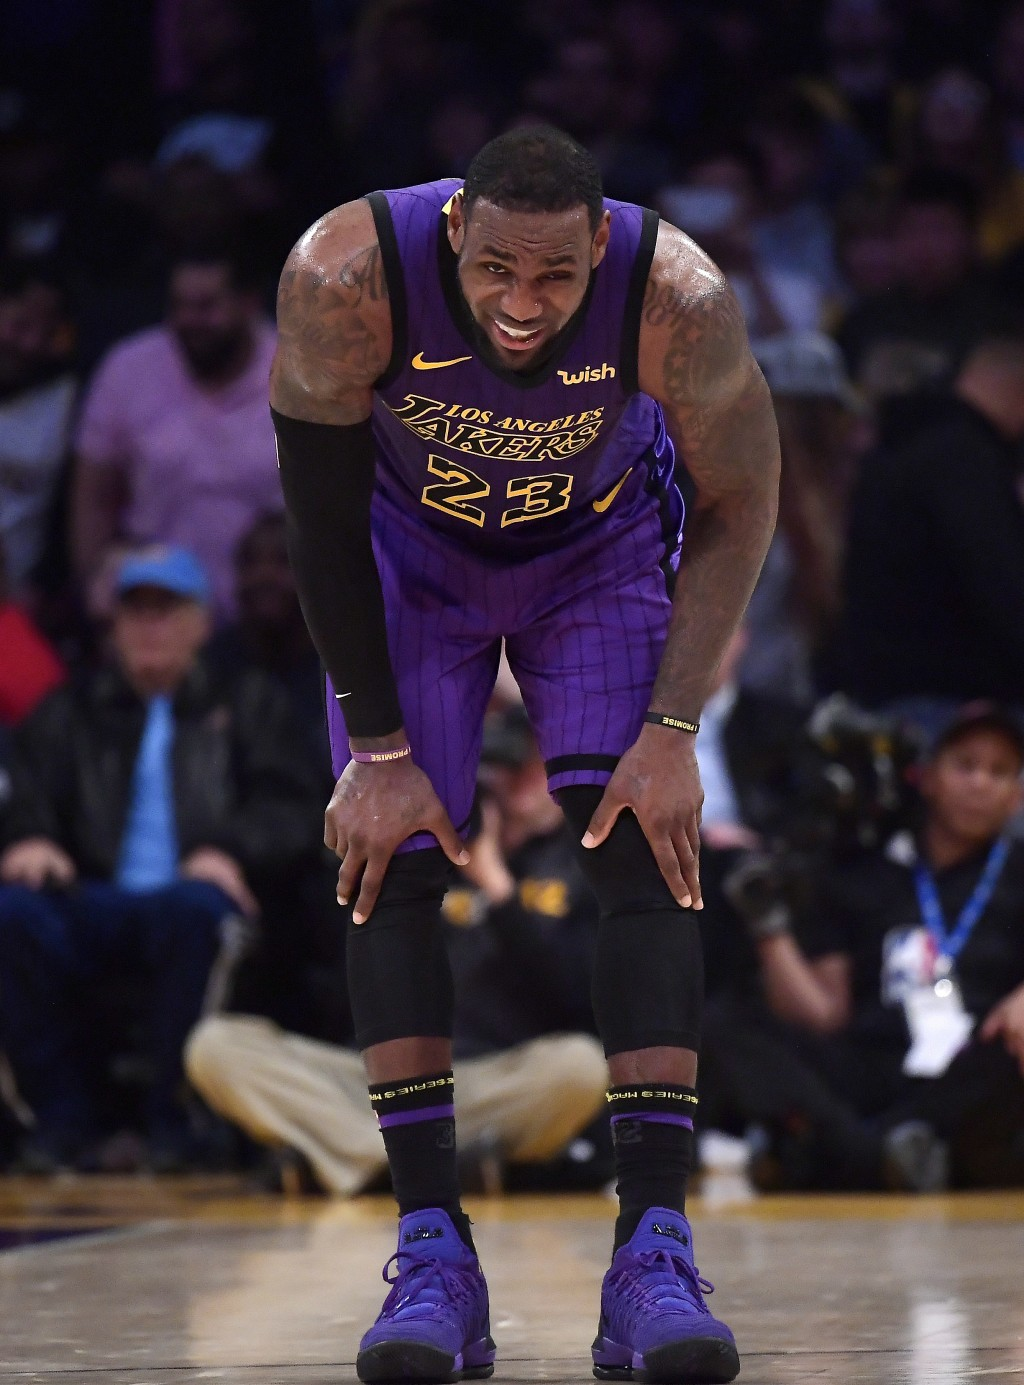 Los Angeles Lakers forward LeBron James winces after falling during the second half of an NBA basketball game against the Brooklyn Nets Friday, March